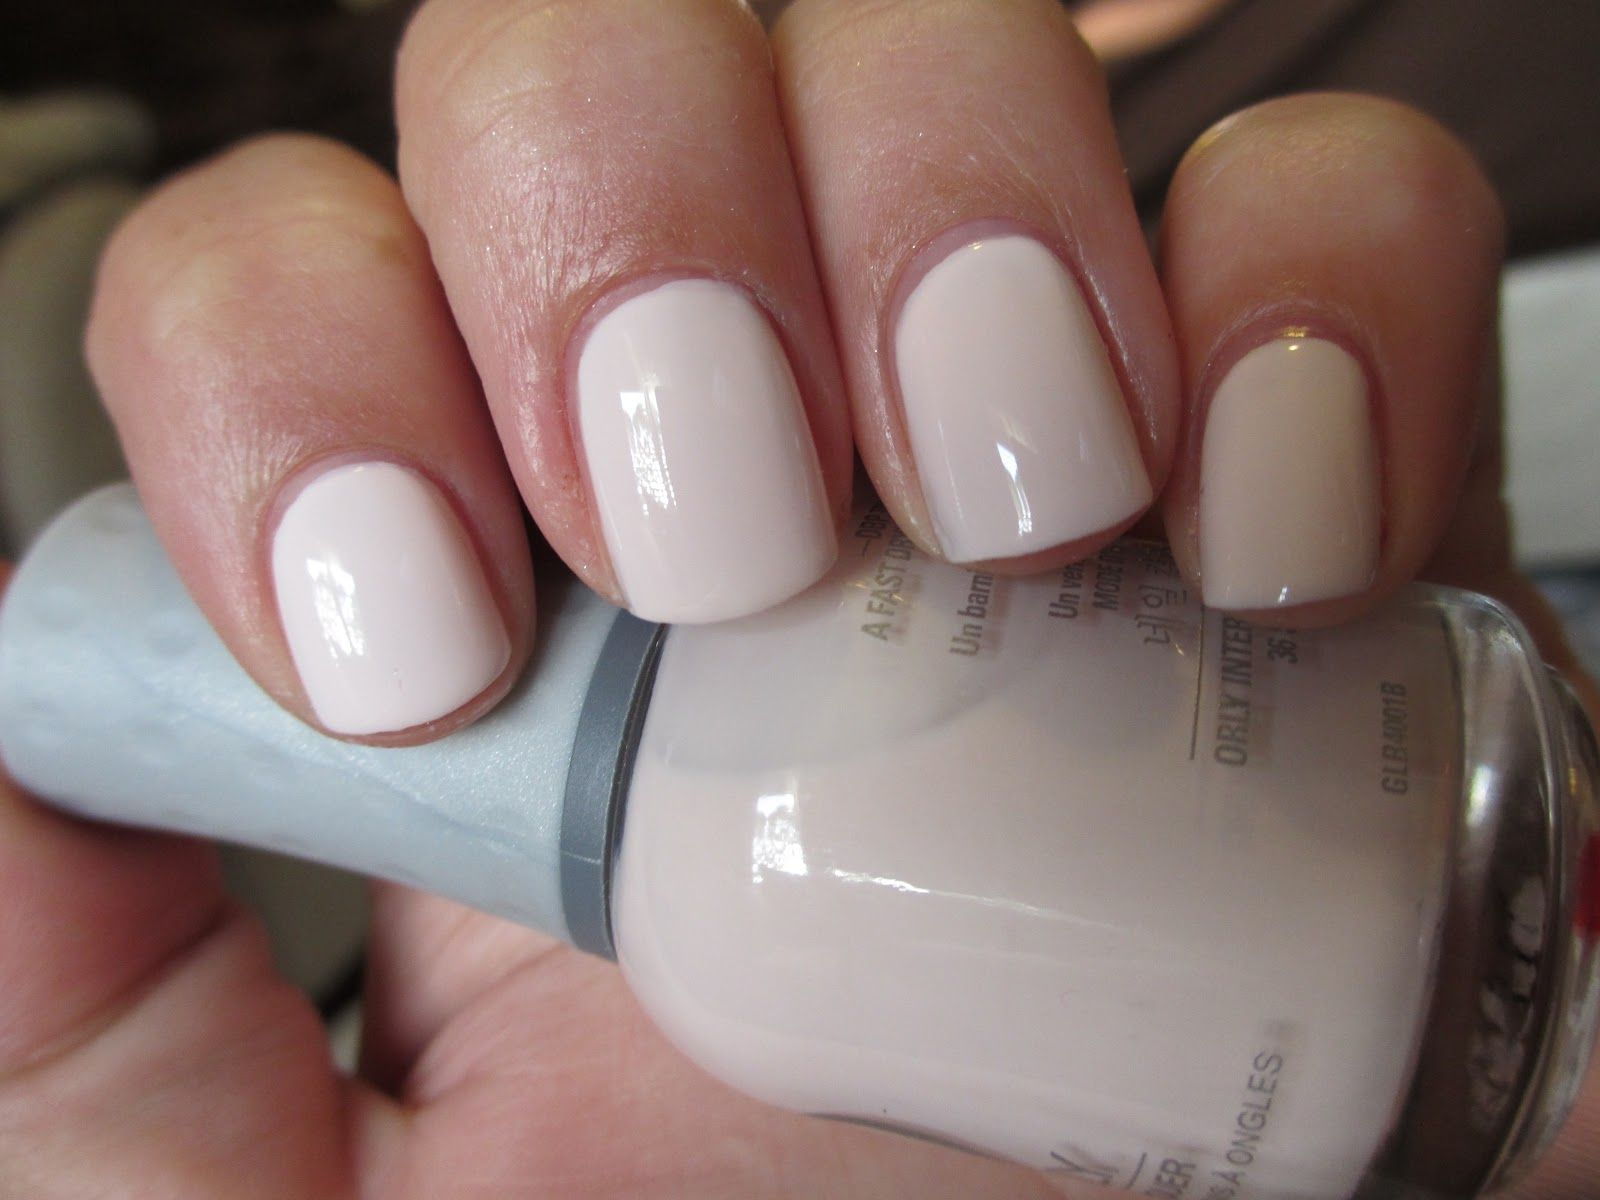 This is Orly - Kiss the Bride, a super light, almost-white, pink ...